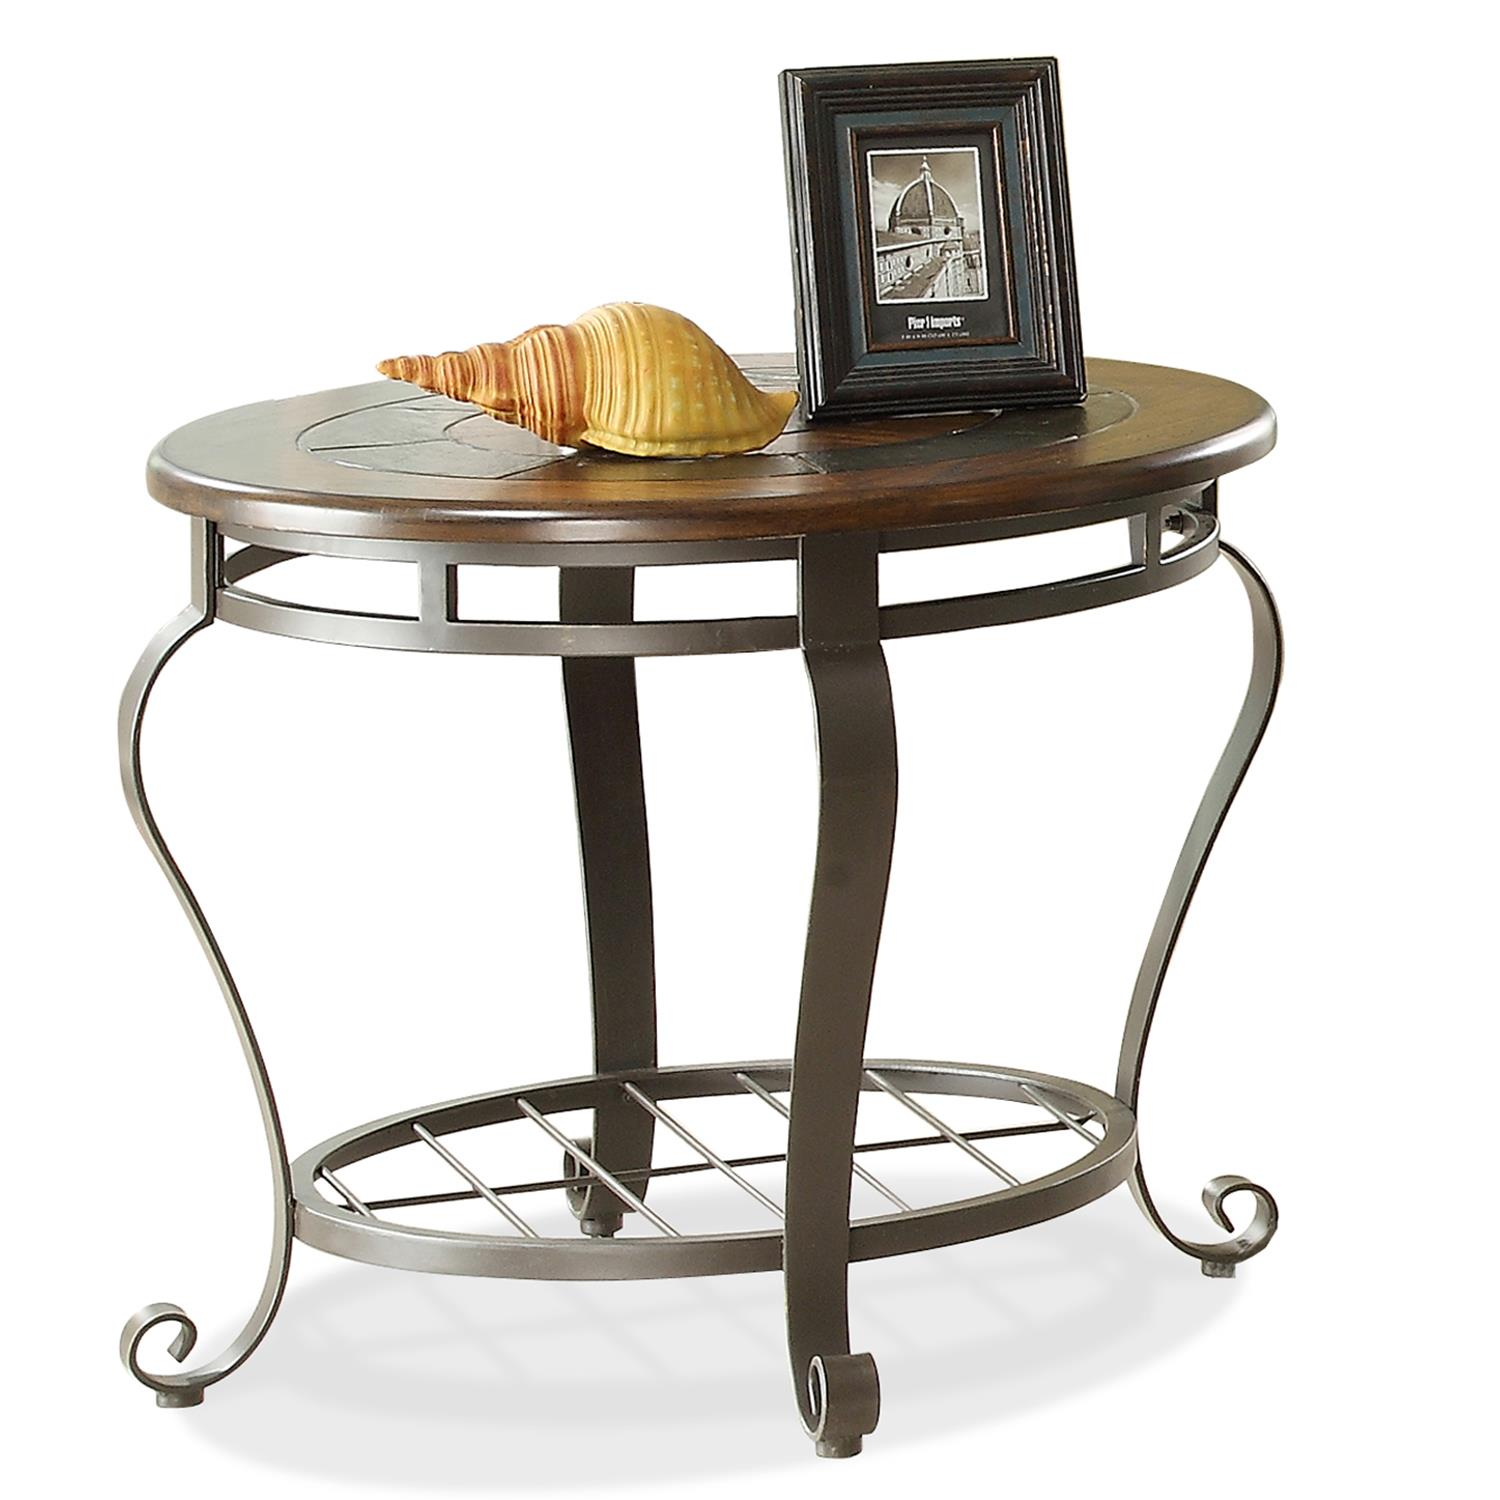 Riverside Furniture Eastview Round End Table - Item Number: 54709